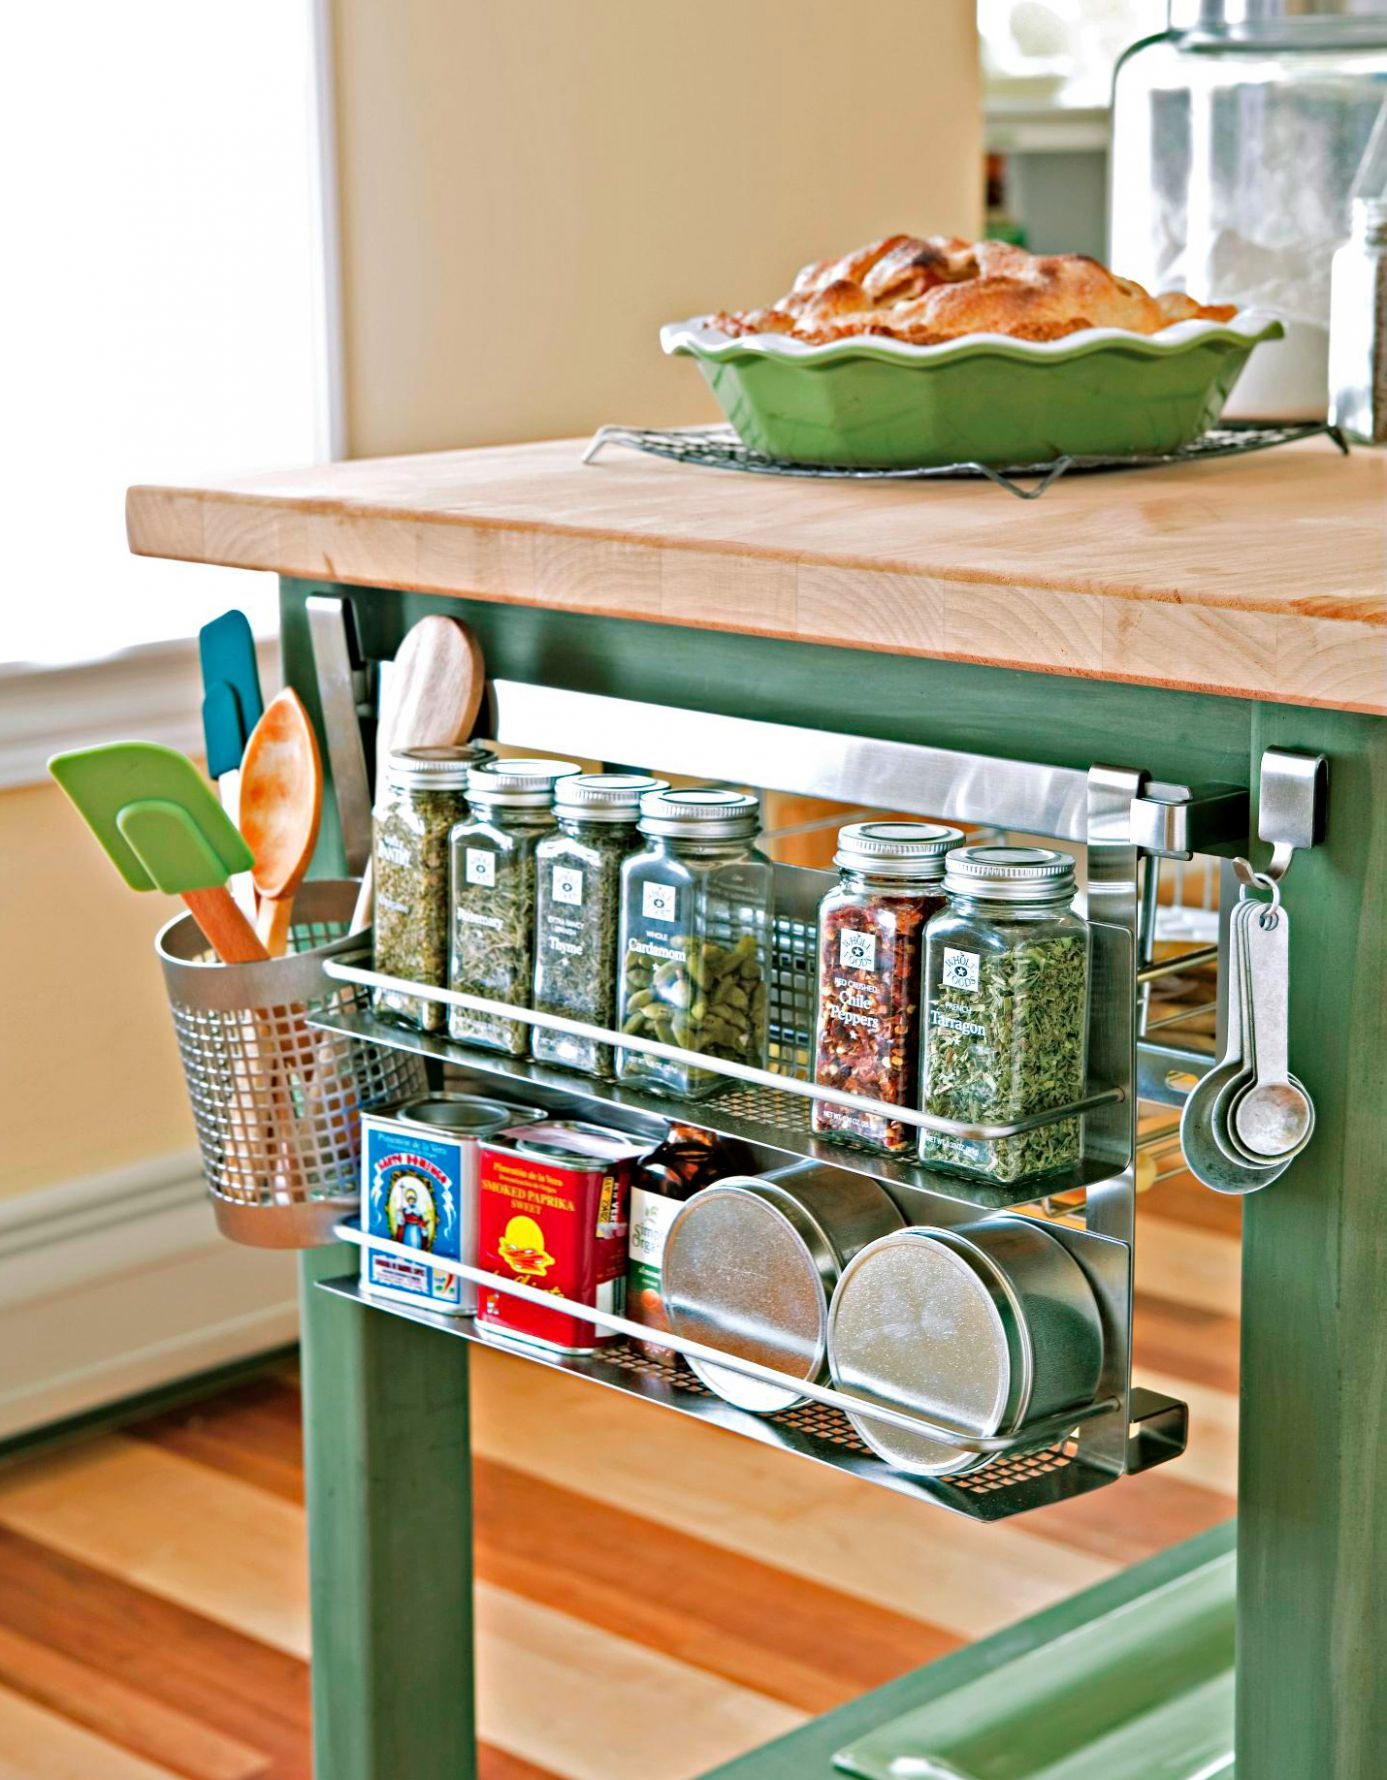 12 Quick and Easy Ideas for Kitchen Organization | Midwest Living - kitchen ideas organizing